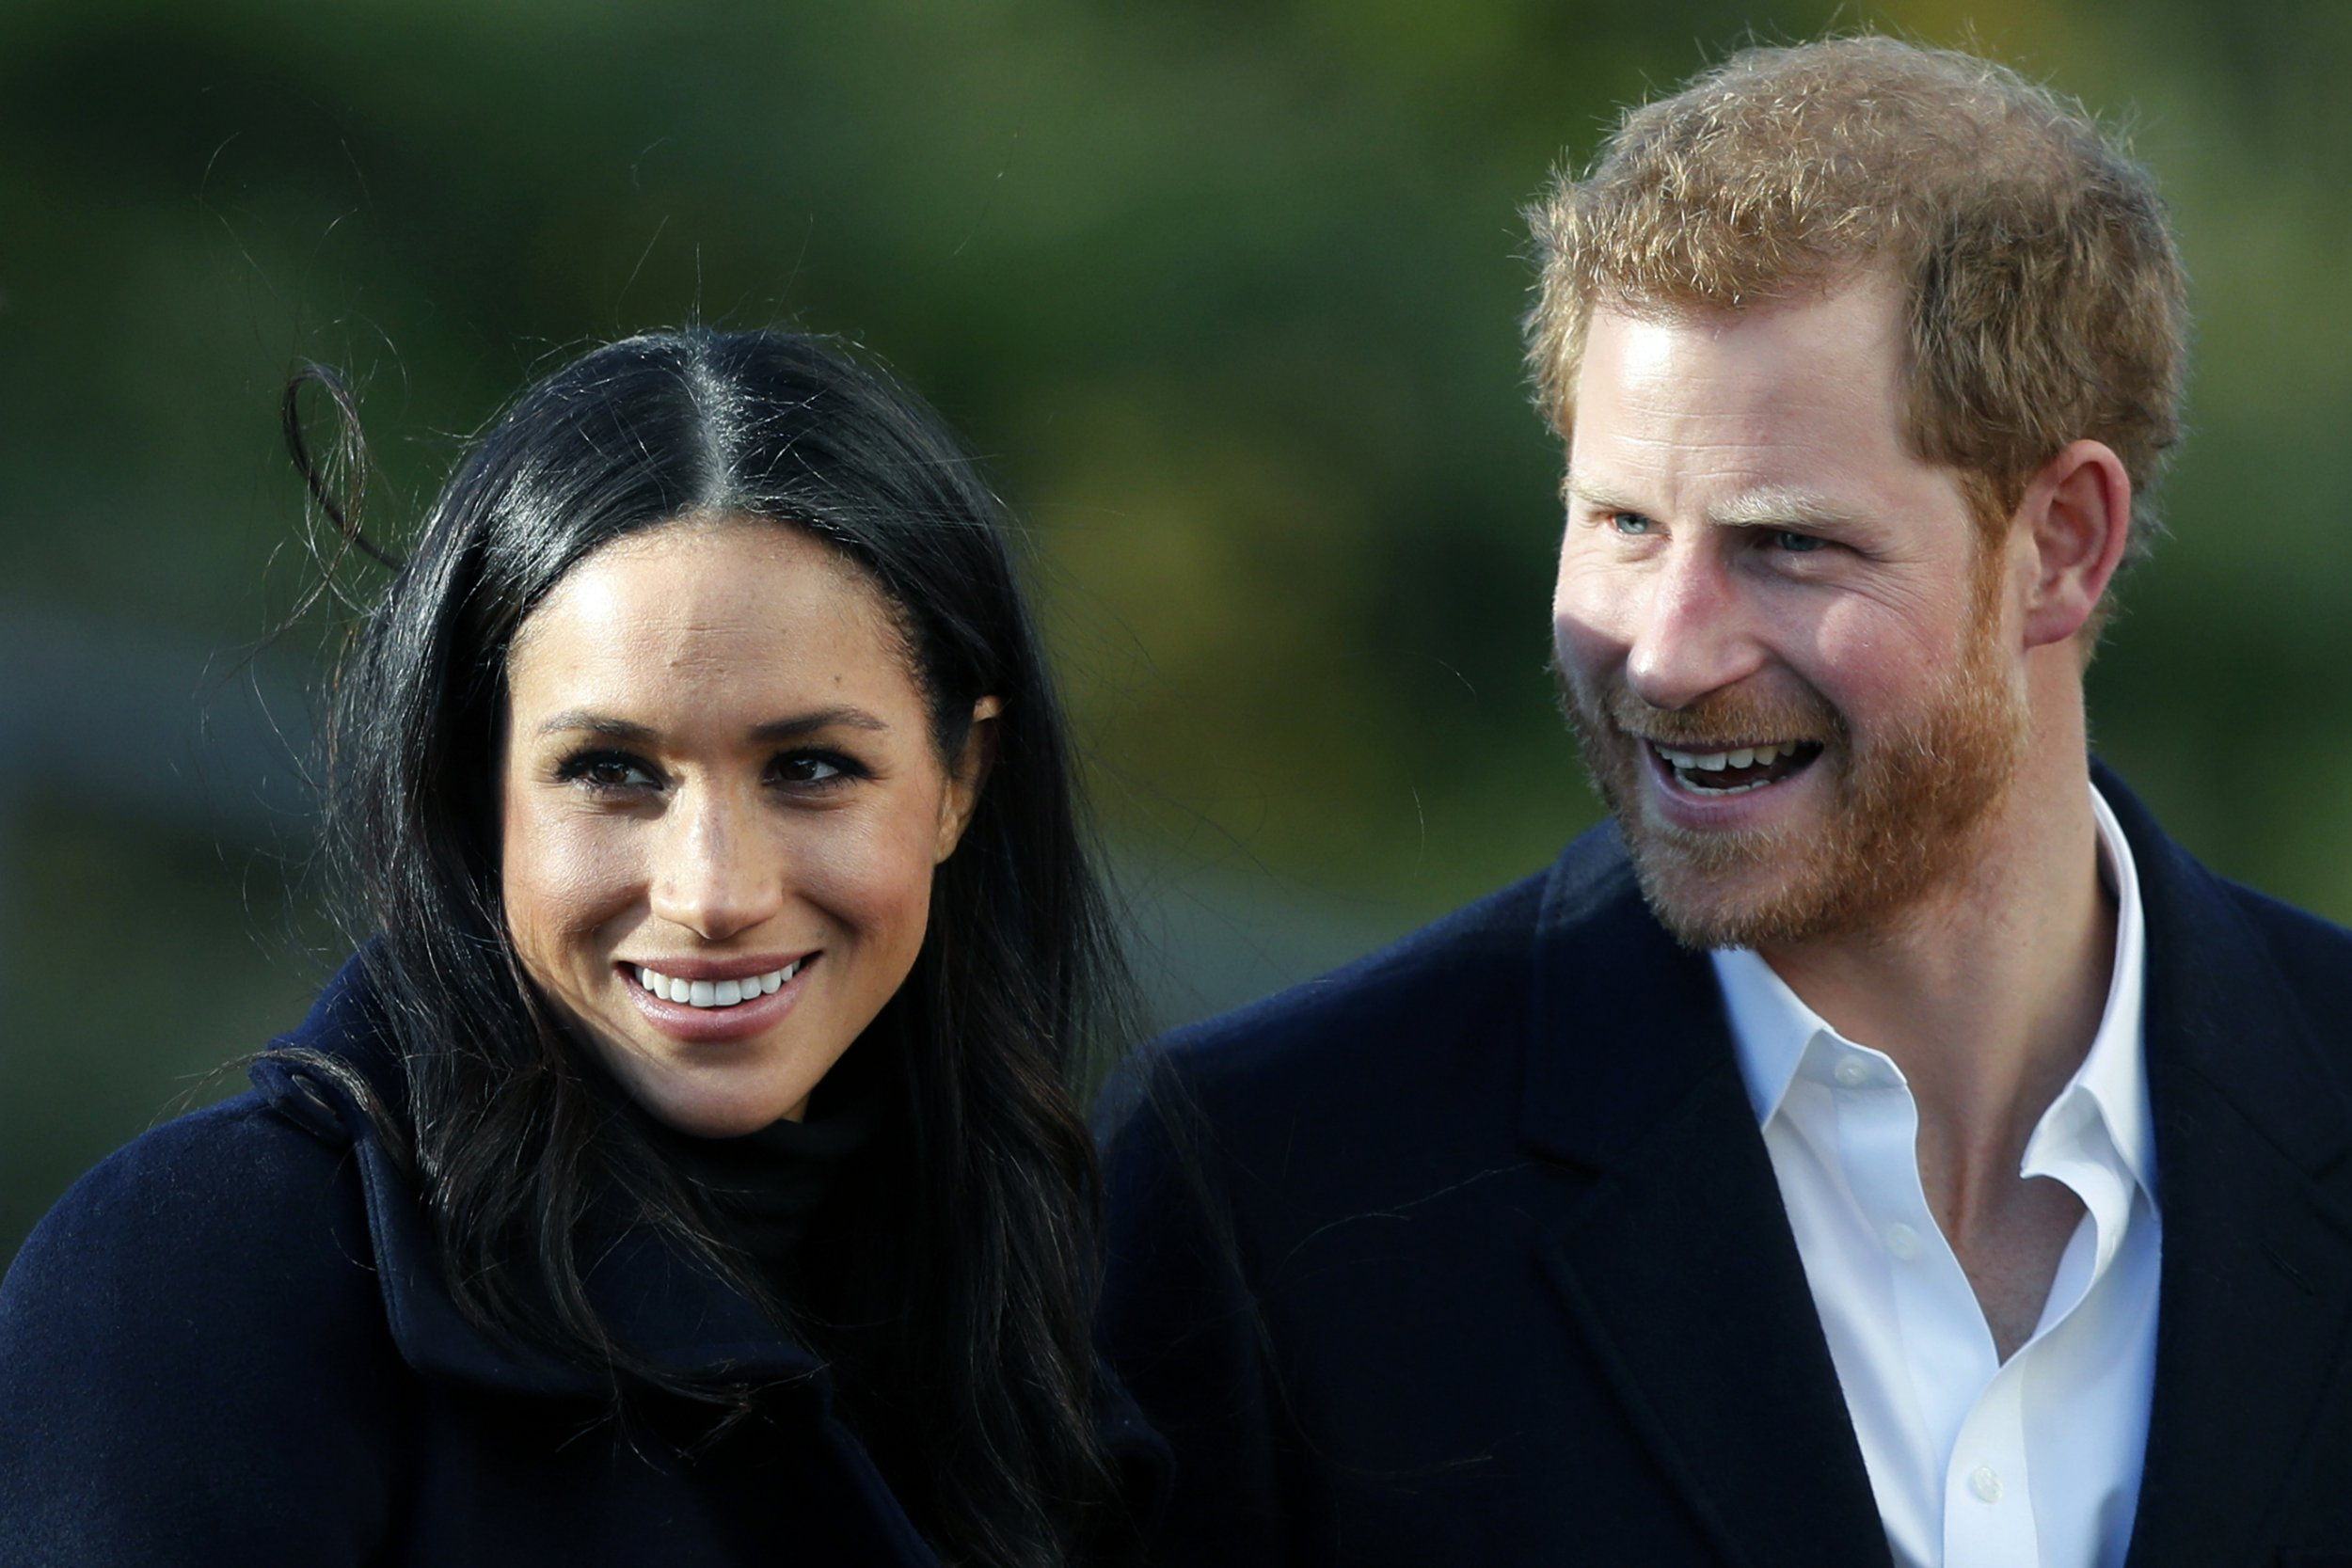 "FILE - In this file photo dated Friday, Dec. 1, 2017, Britain's Prince Harry and his fiancee Meghan Markle, in Nottingham, England. The Metropolitan Police force said ""a package containing a substance"" was delivered to St. James's Palace on Feb. 12, sent to Prince Harry and his fiancee Meghan Markle, and is now being investigated as a racist hate crime, Scotland Yard said Thursday Feb. 22, 2018. (AP Photo/Frank Augstein, FILE)"